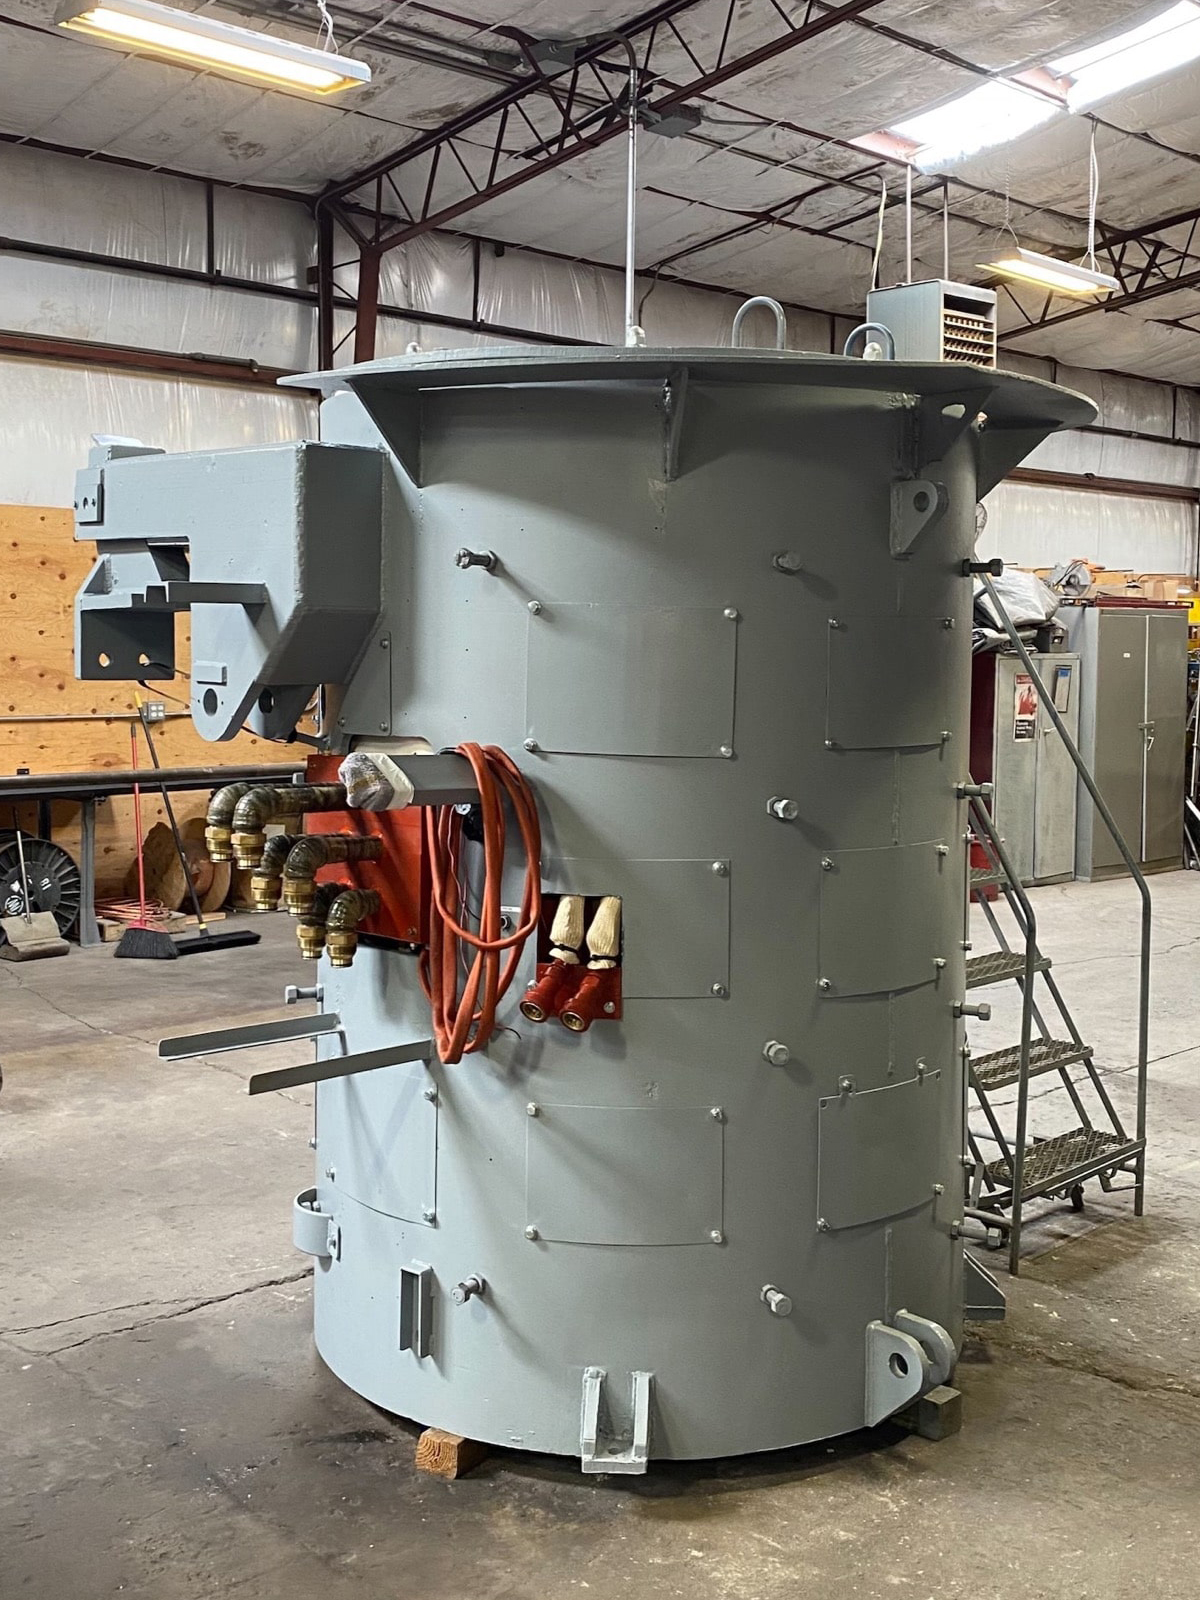 Fully rebuilt 6 Ton Steel Shell Furnace with new induction coil